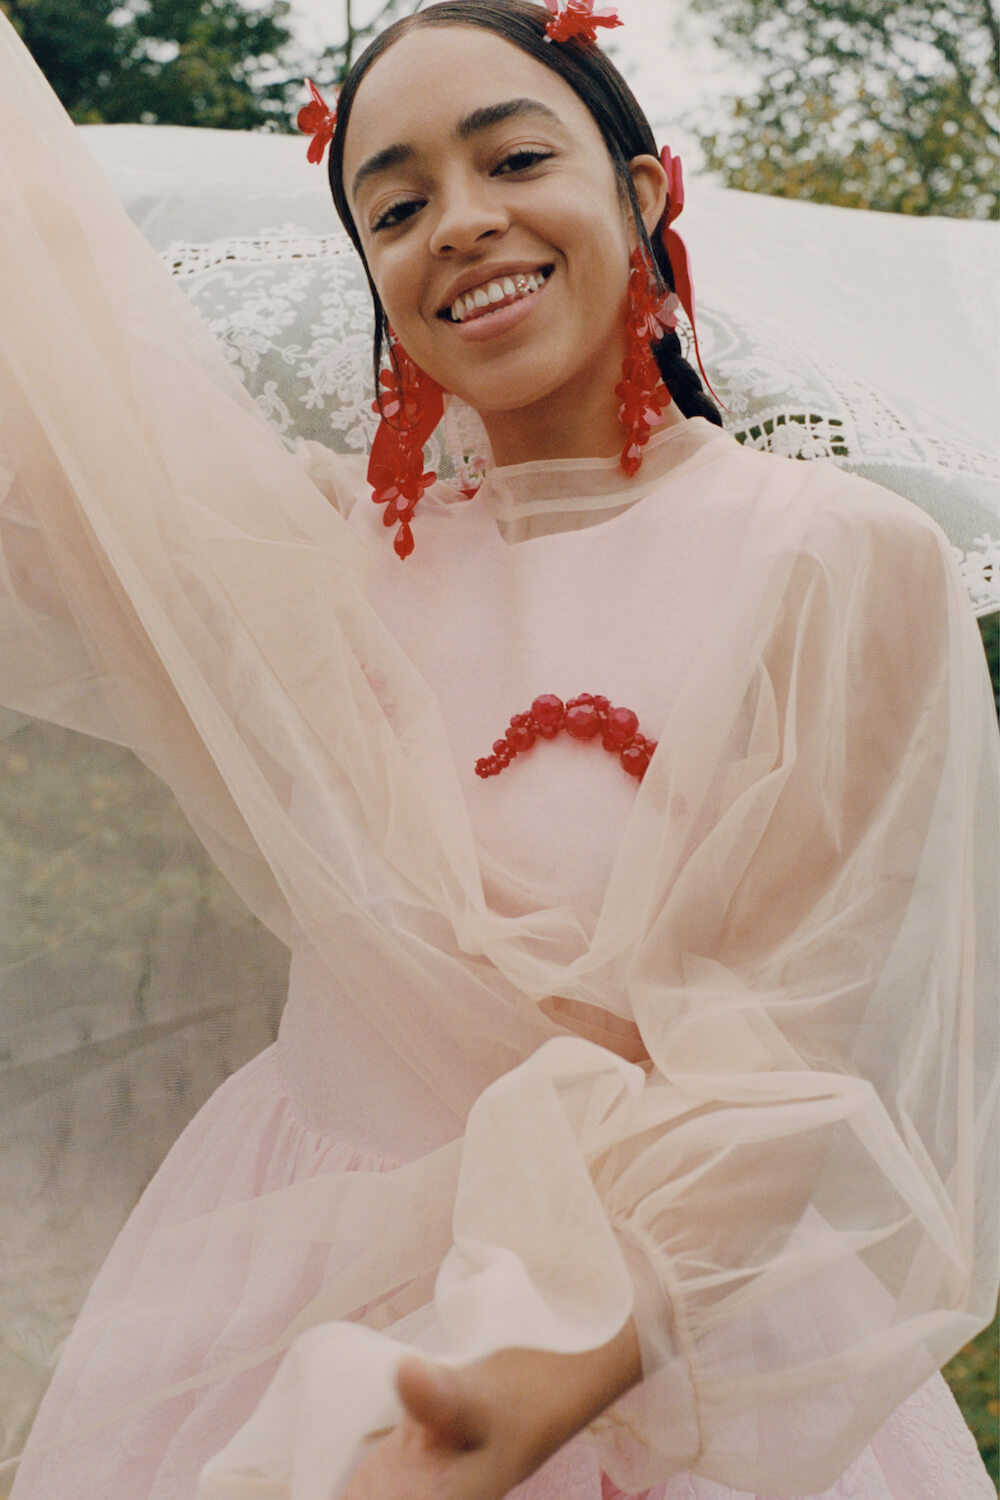 There are only 10 of this Simone Rocha x H&M dress in the world - here's how to get one